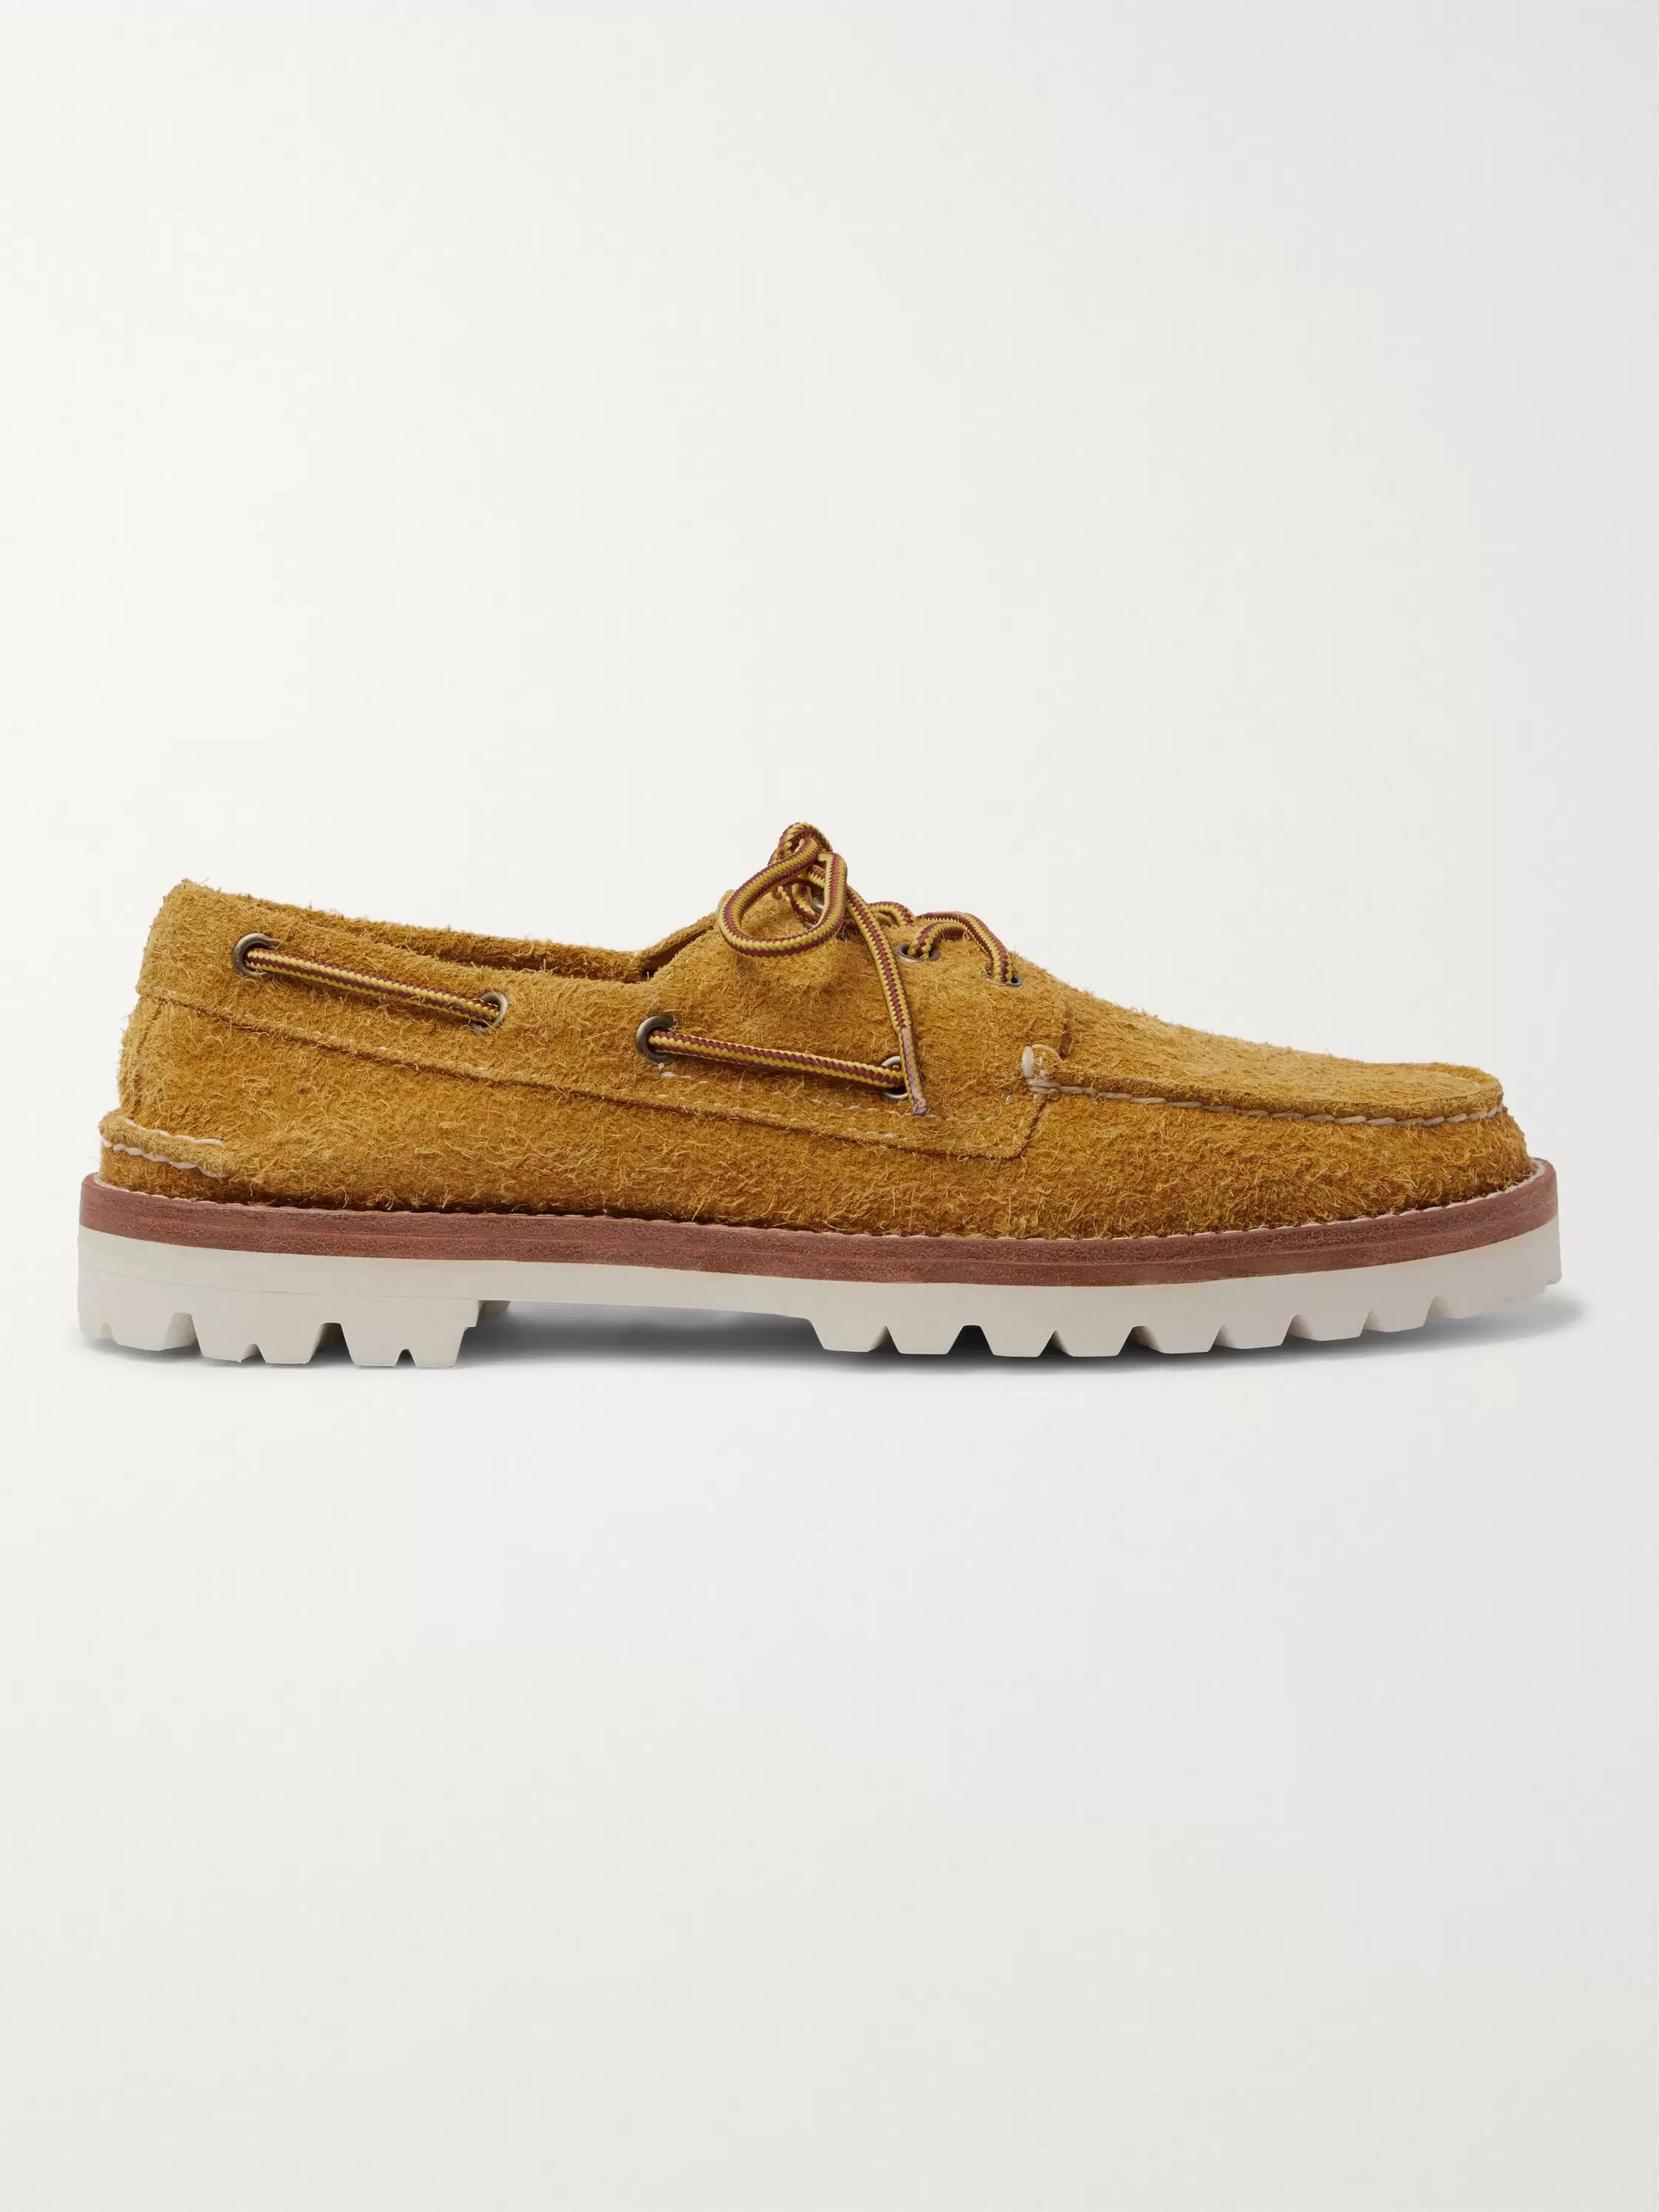 Sperry Authentic Original Brushed-Suede Boat Shoes